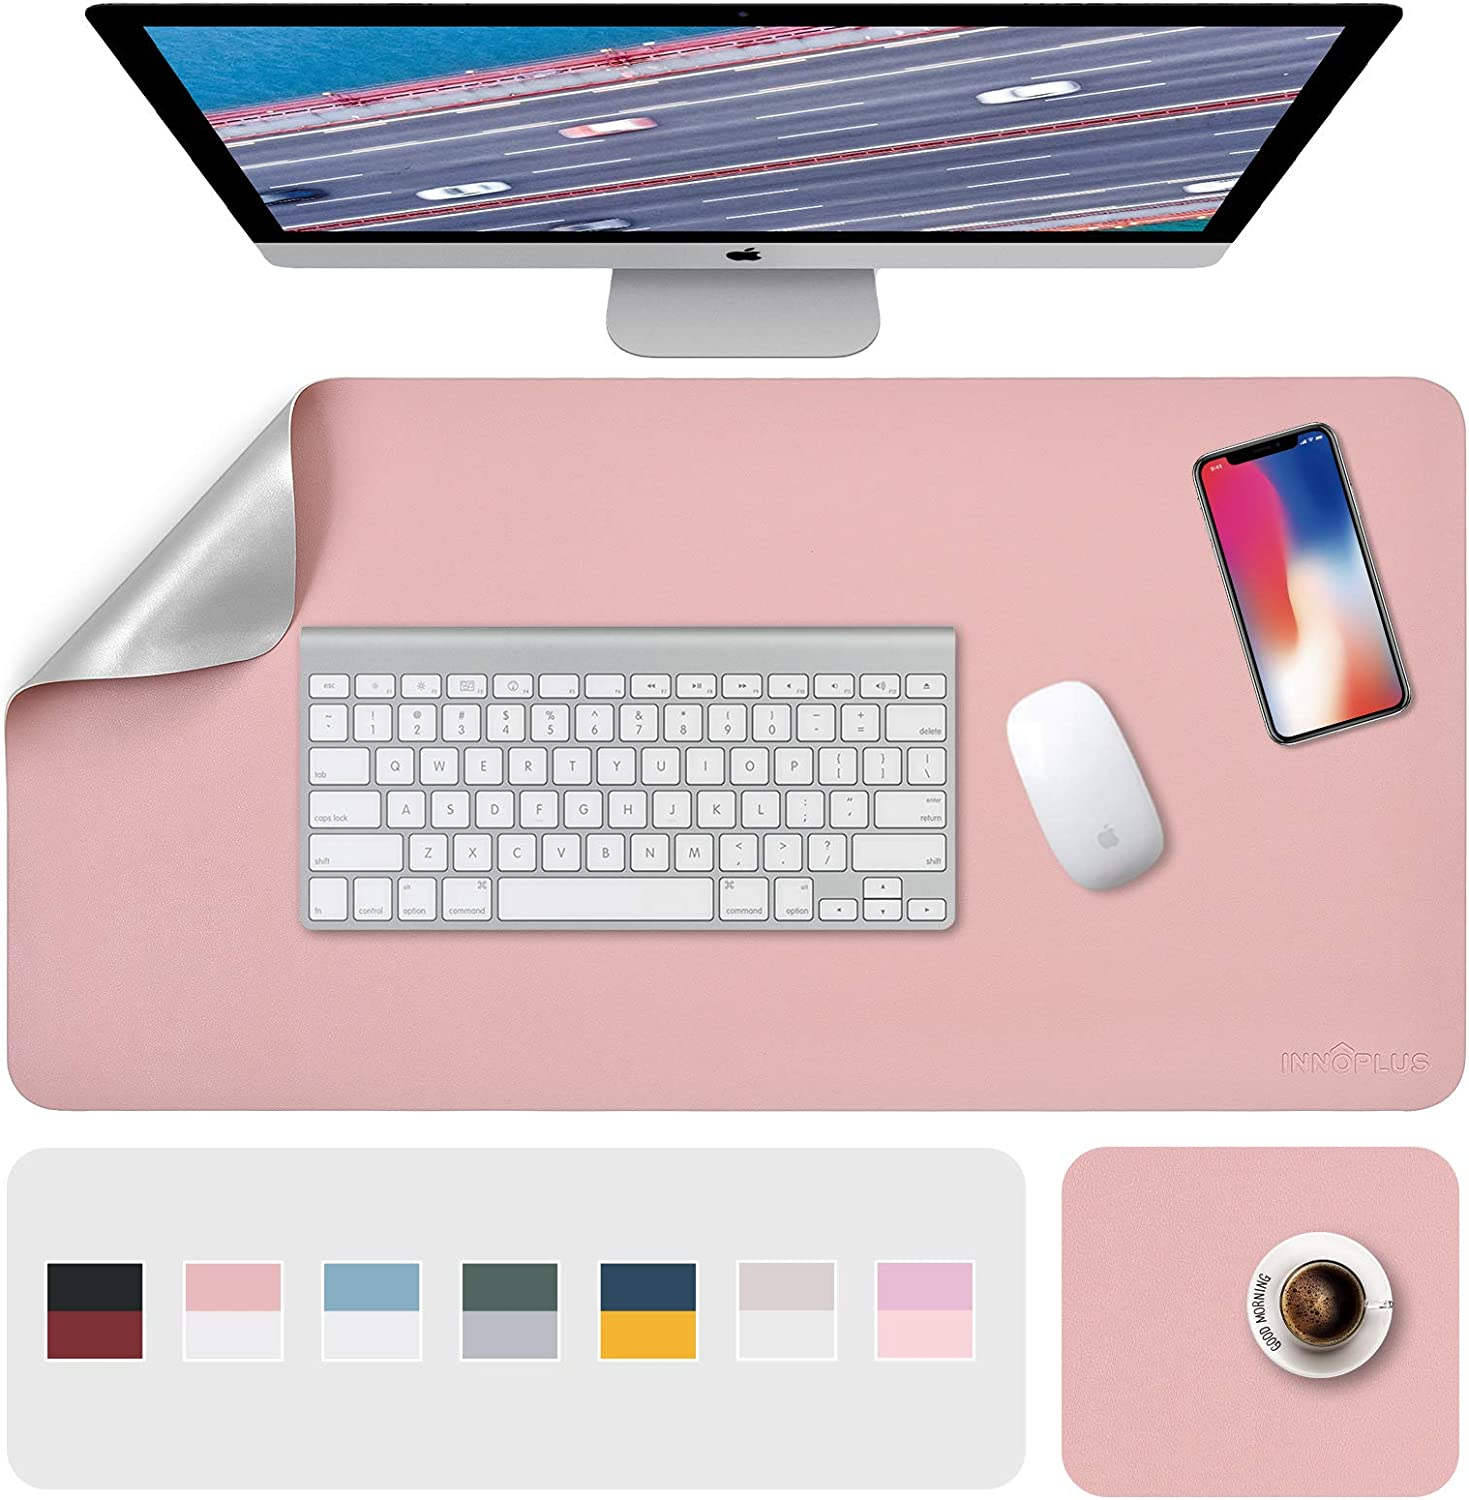 """Desk Pad, Desk Mat, Mouse Mat, XL Desk Pads Dual-Sided Pink/Sliver, 31.5"""" x 15.7"""" + 8""""x11"""" PU Leather Mouse Pad 2 Pack Waterproof, Mouse Pad for Laptop, Home Office Table Protector Blotter Gifts"""